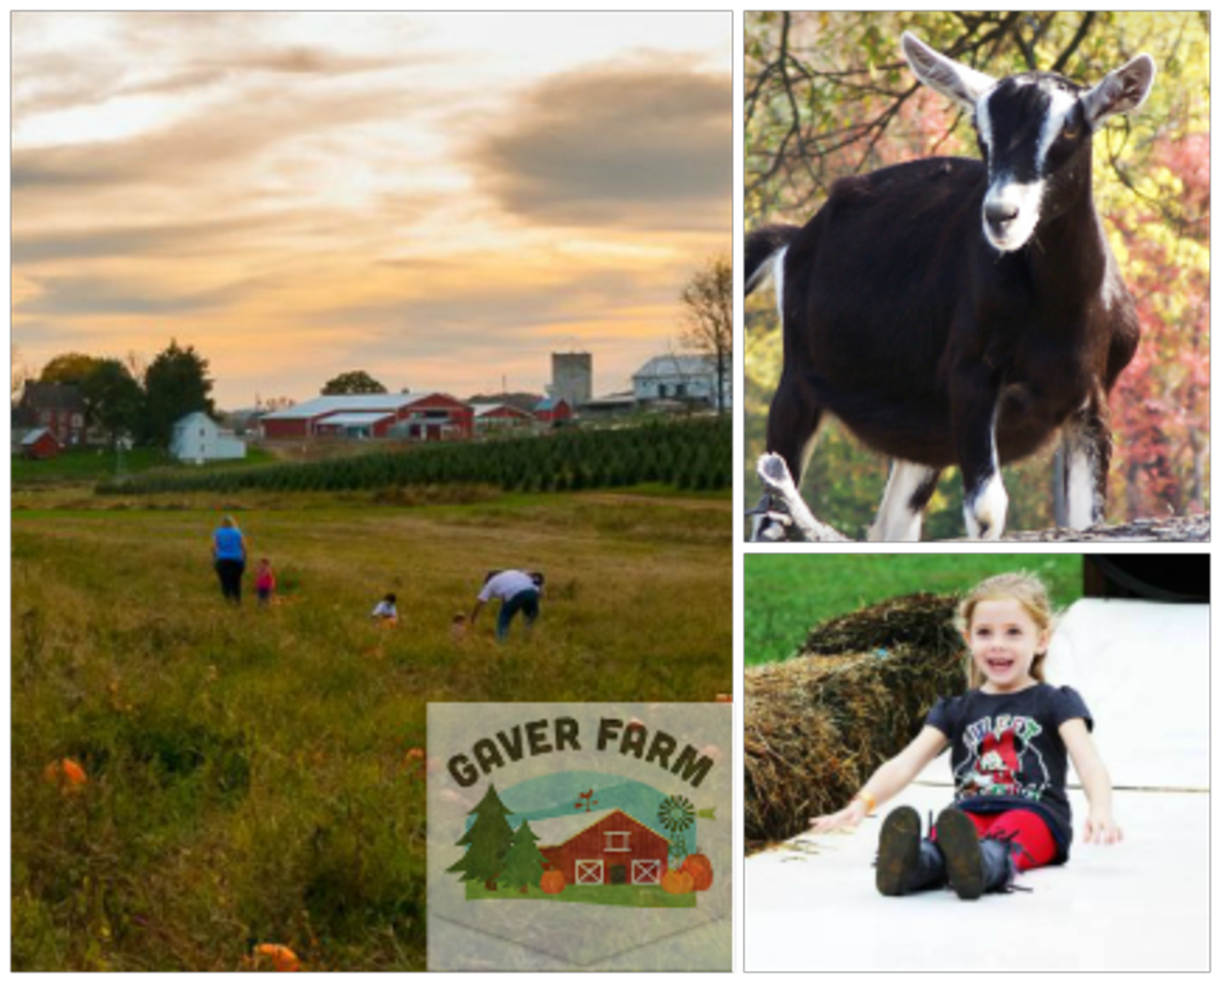 Heritage Owings Mills >> Deal: $10 for TWO Weekend Admissions to Gaver Farm in Mt. Airy, MD ($19 Value - 48% Off ...